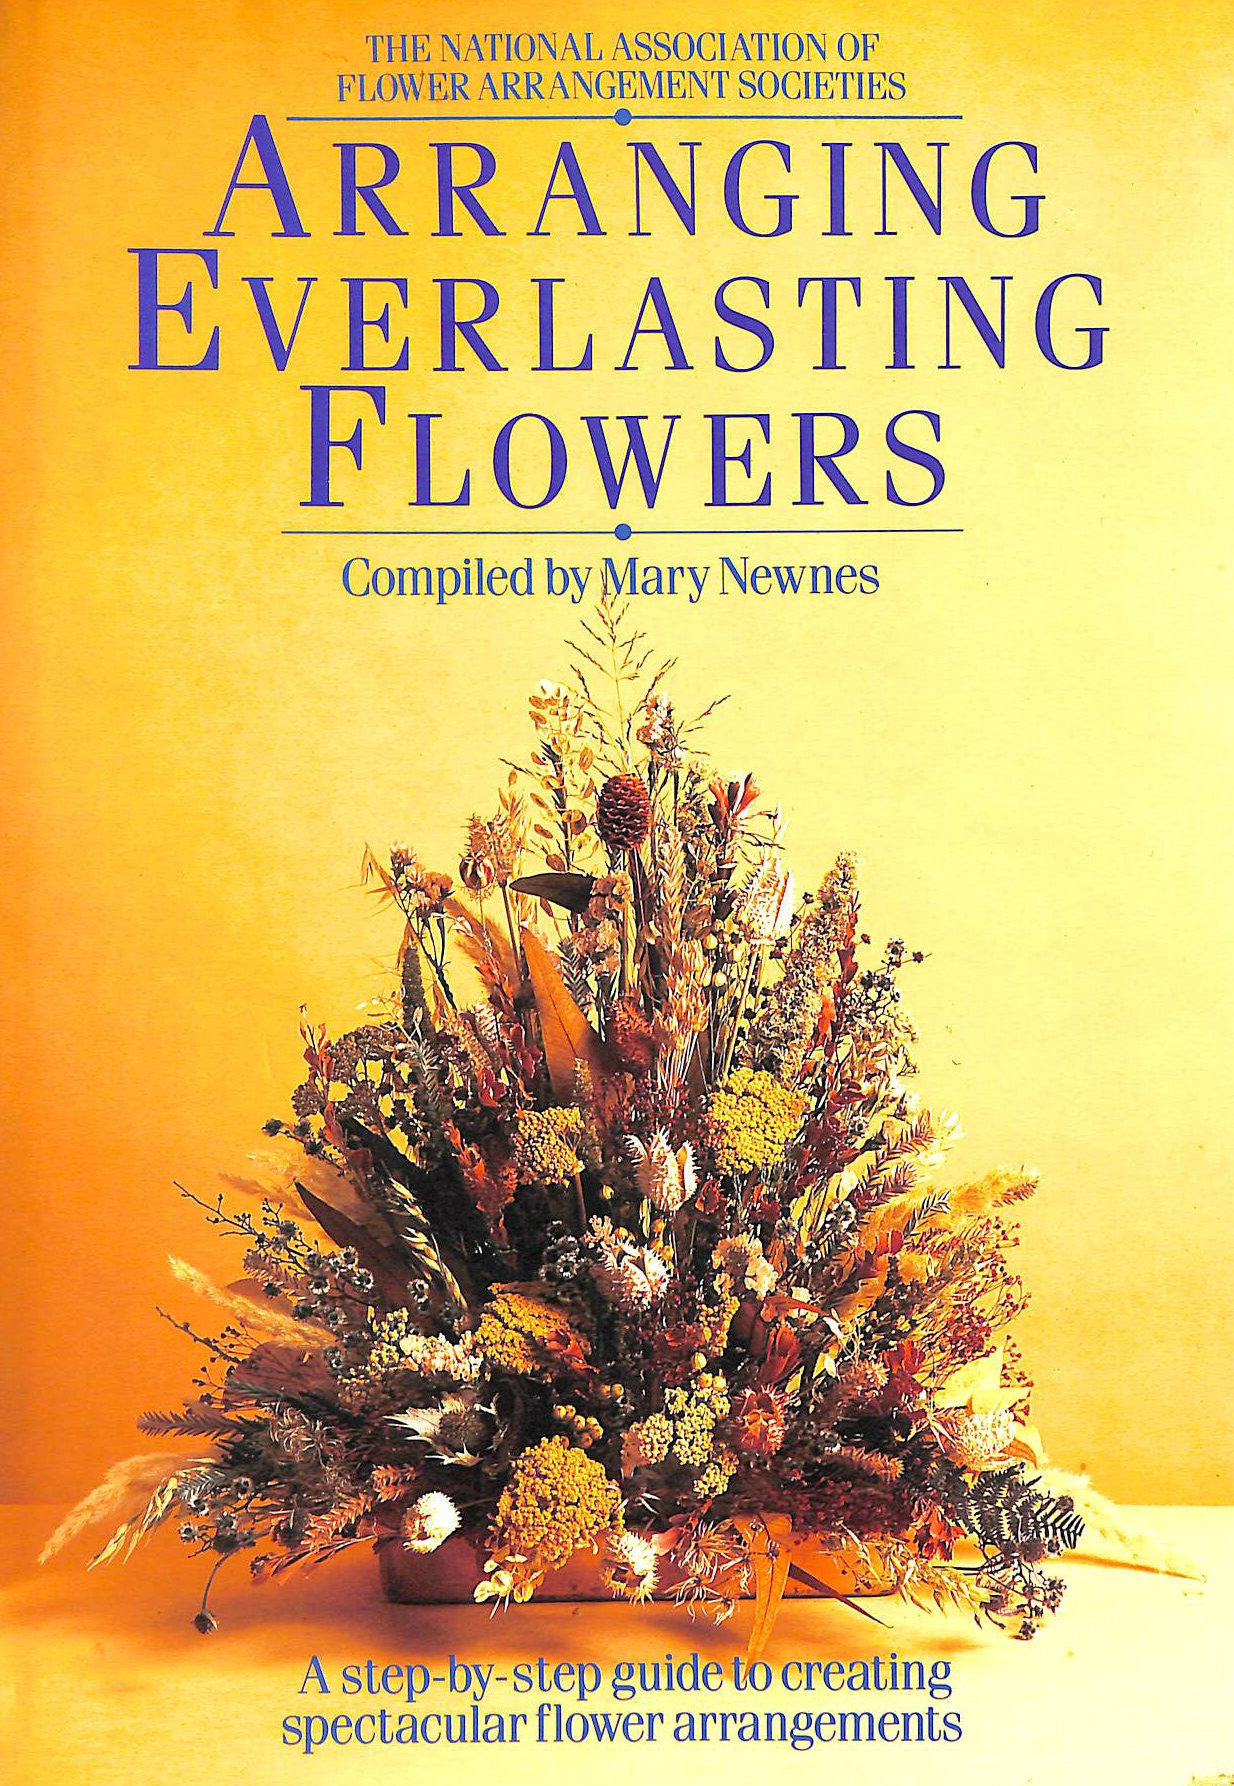 Image for National Association of Flower Arrangement Societies: Arranging Everlasting Flowers